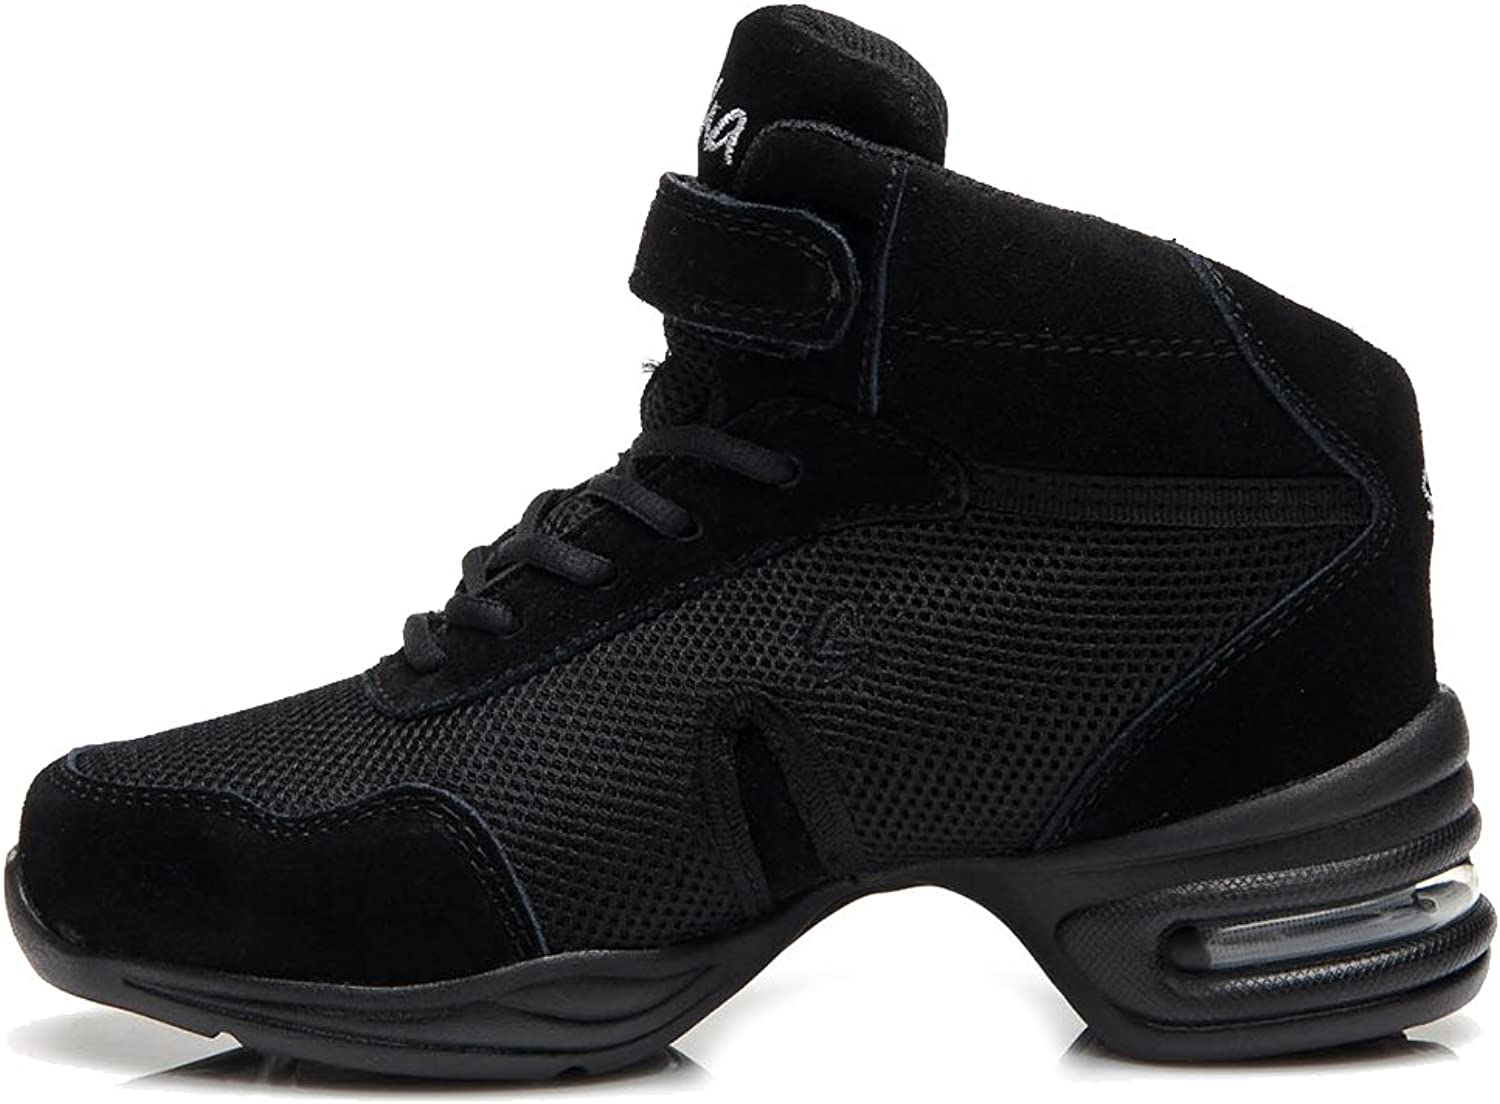 Roymall Men and Women's Modern Jazz Soft Leather Dance Sneaker shoes, Dance-sneakers Model CAB57 58 59